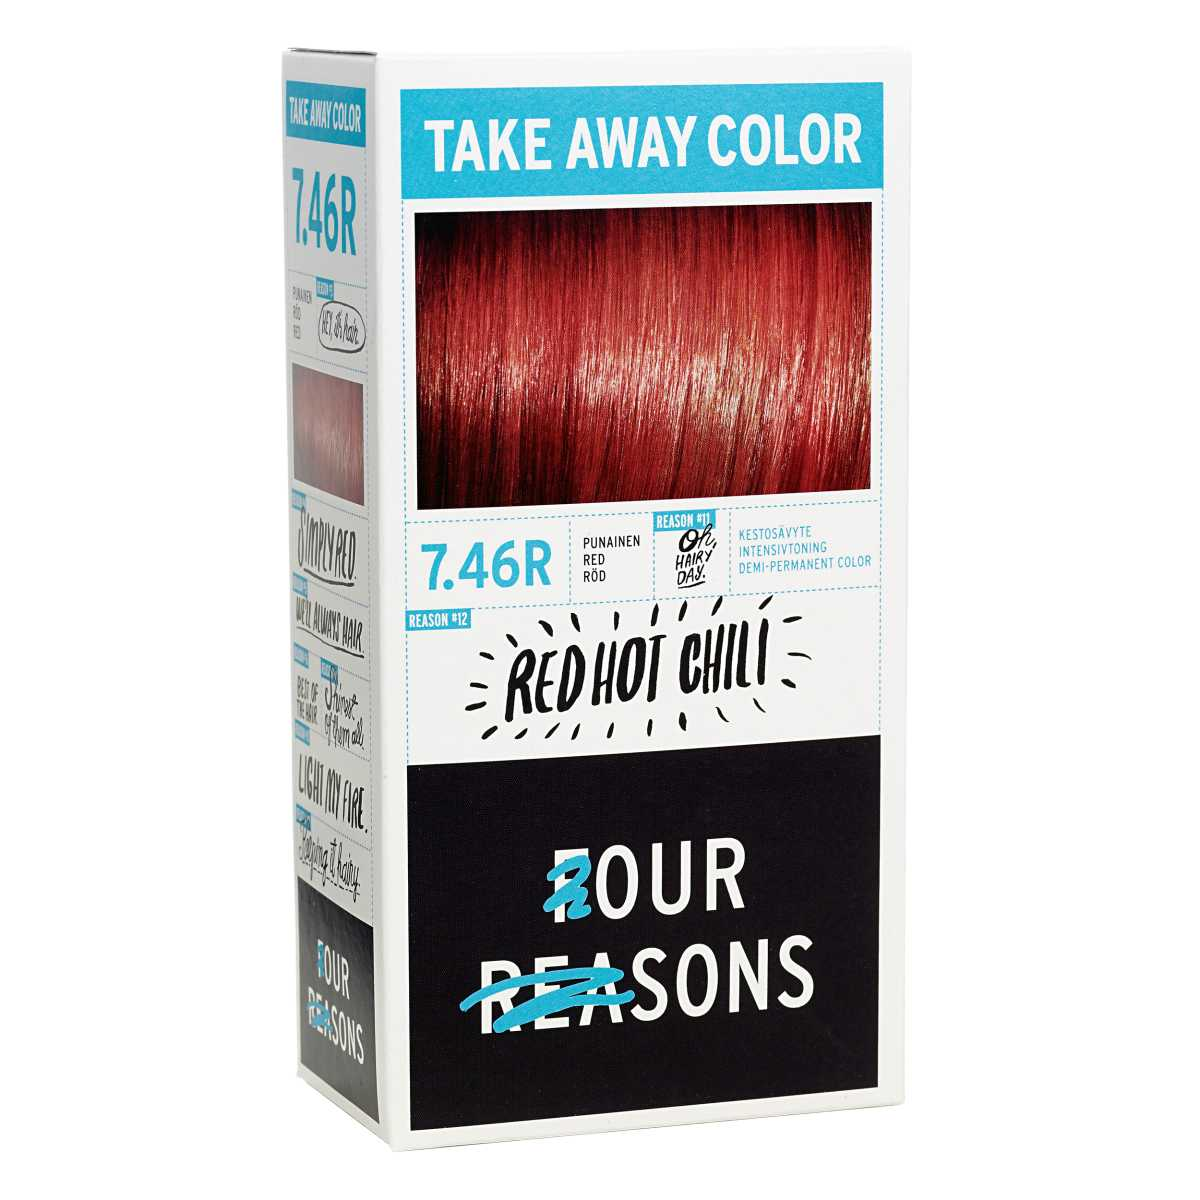 Four-Reasons-Take-Away-Color-Red-Hot-Chili-7-46R